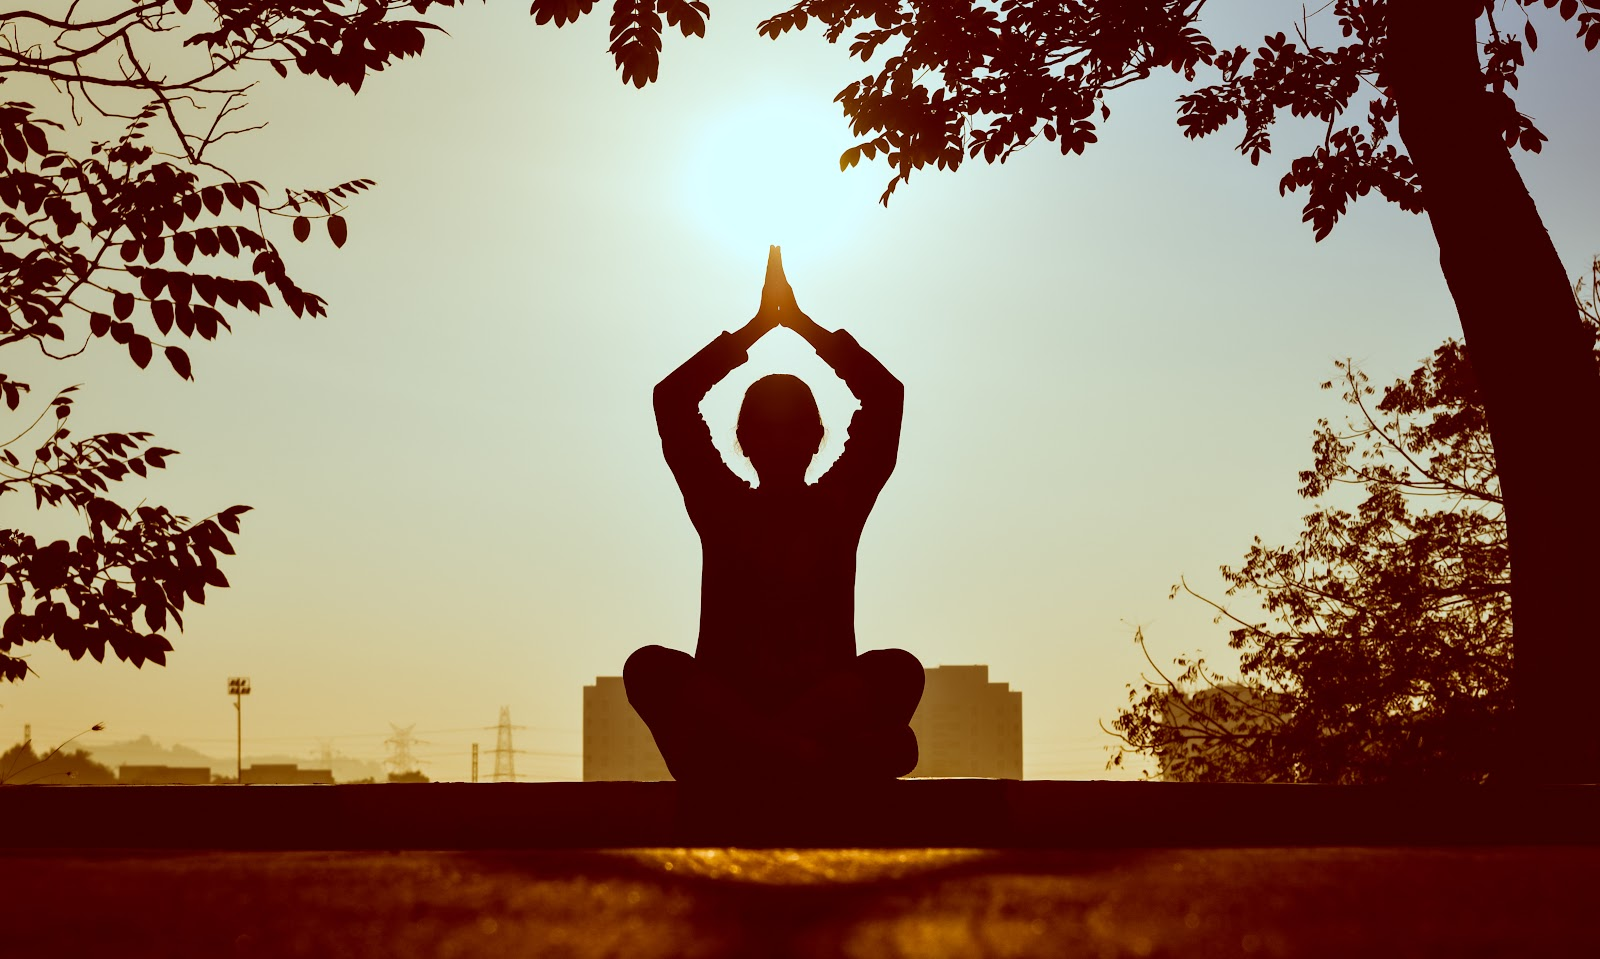 Silhouette of a person doing yoga in a park with the son shining above their clasped hands raised above their head.